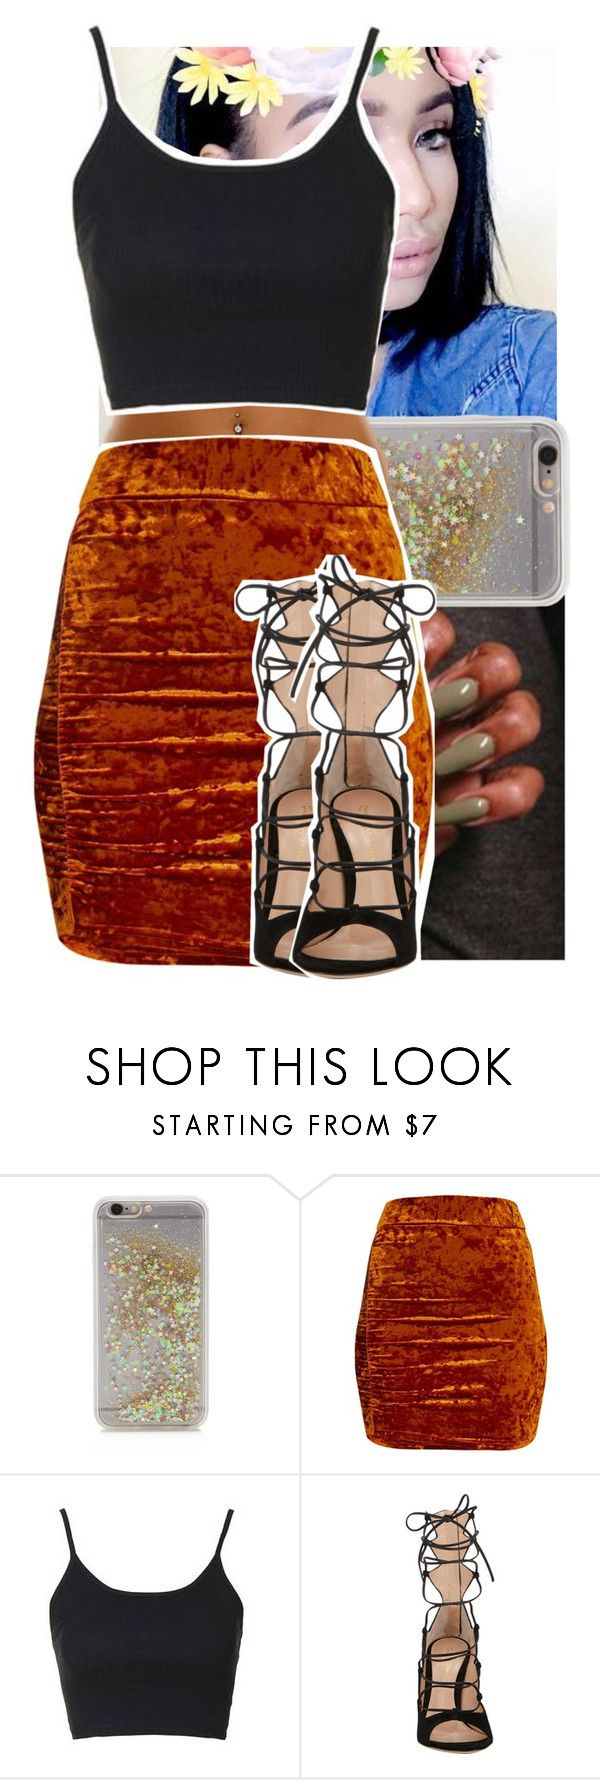 """""""."""" by theyknowtyy ❤ liked on Polyvore featuring ban.do, Topshop and Gianvito Rossi"""